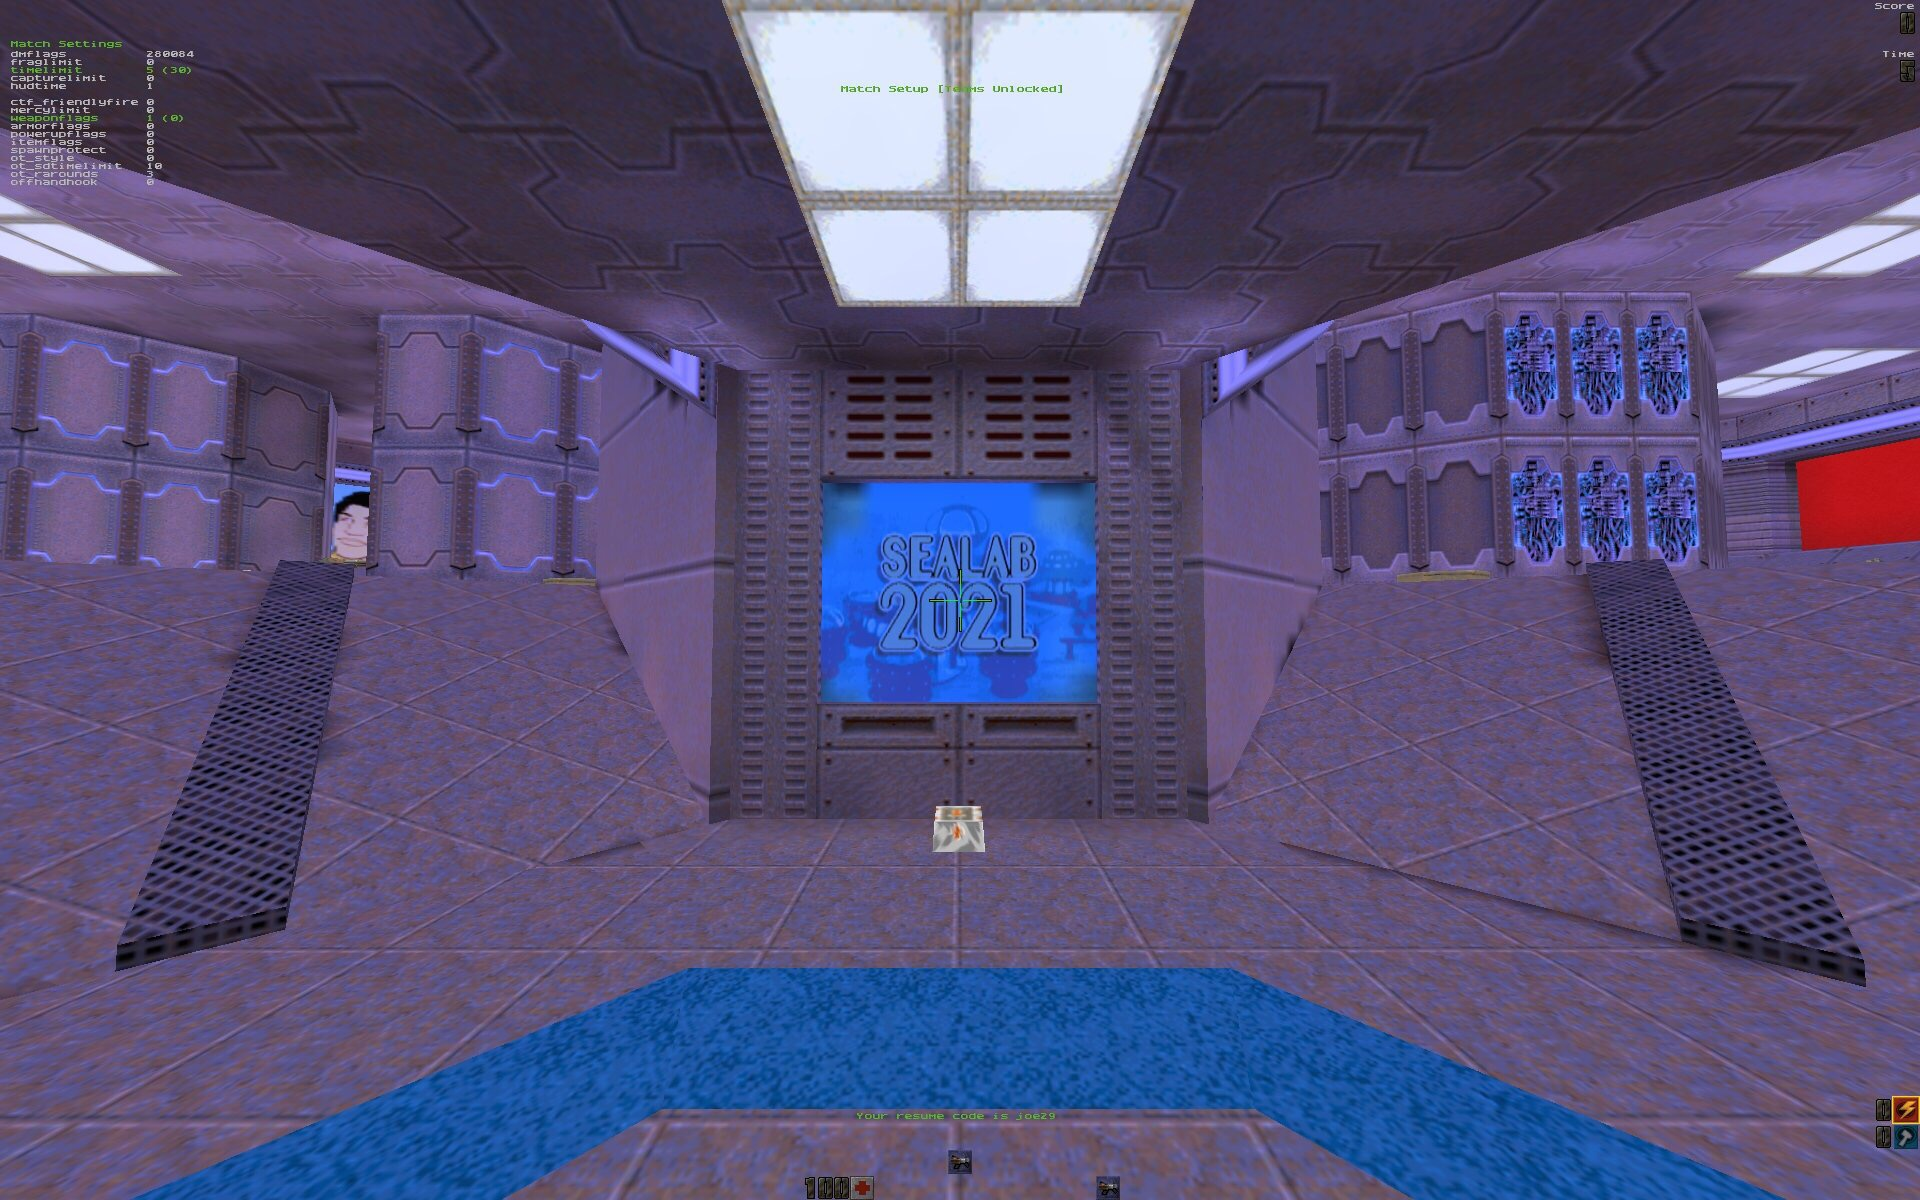 q2ctf acmectf quake 2 capture the flag 2015 fact3 bsp mintro as2m7 cacophony h0ps 3rdarm reefer